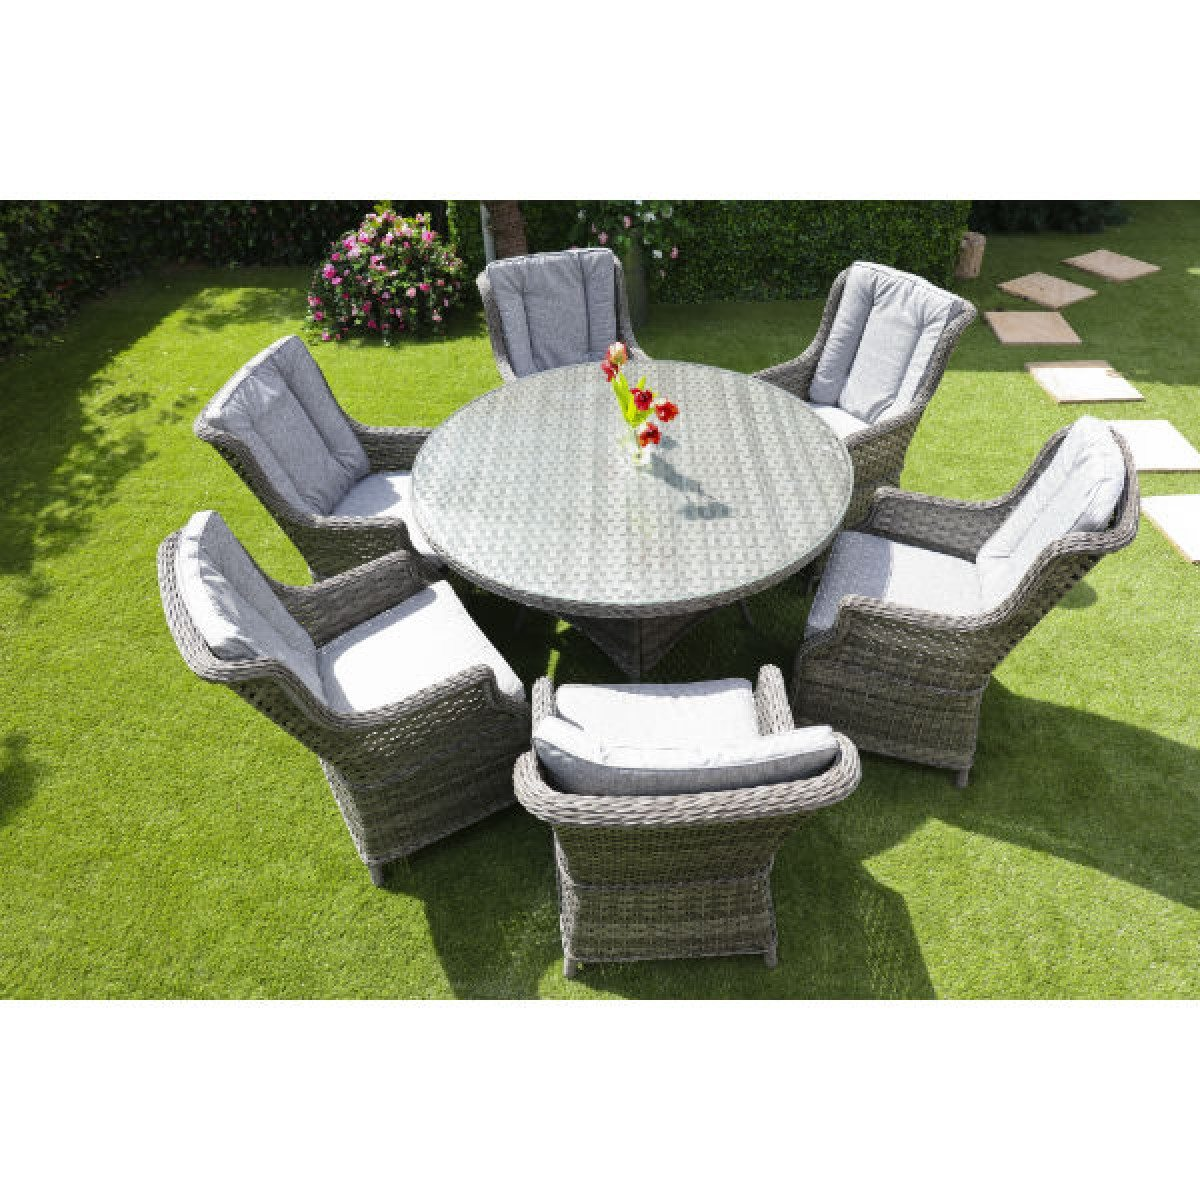 Garden Furniture Kerry dairygold co-op superstores